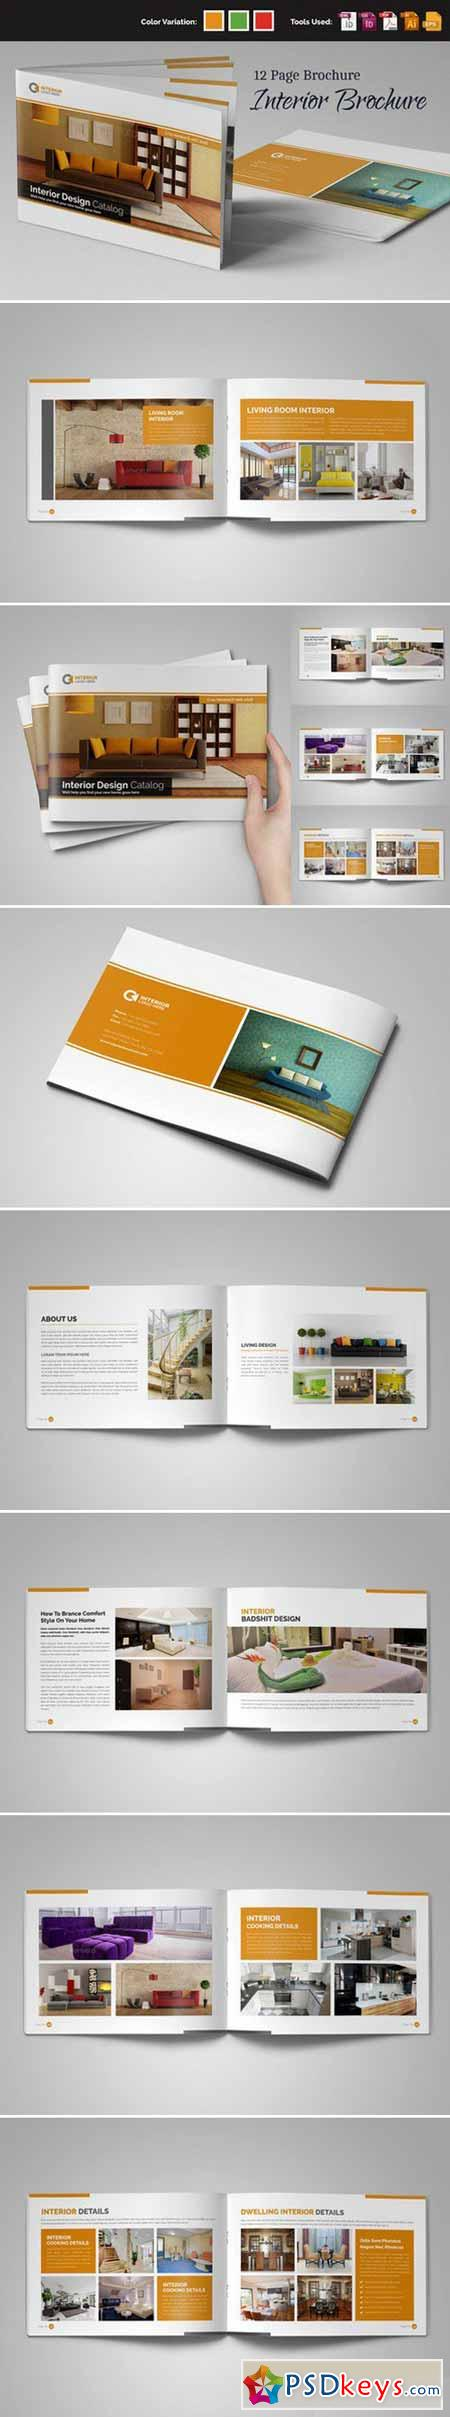 Interior Brochure InDesign v.1 459054